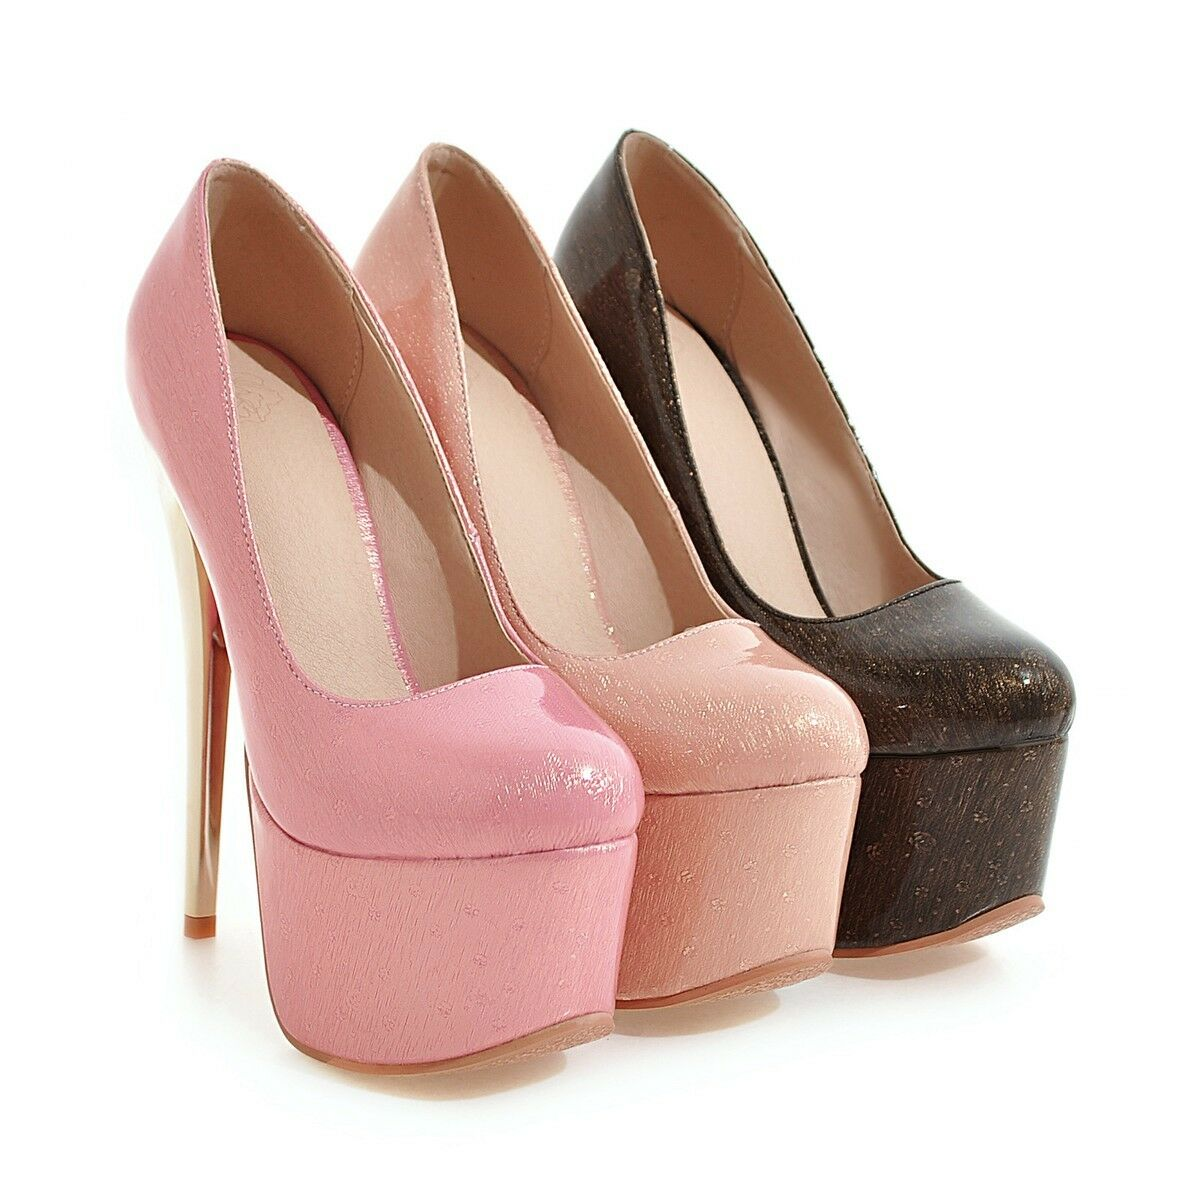 Women's High Heels Synthetic Leather Round Toe Shoes Platform Pumps US Size 2~14